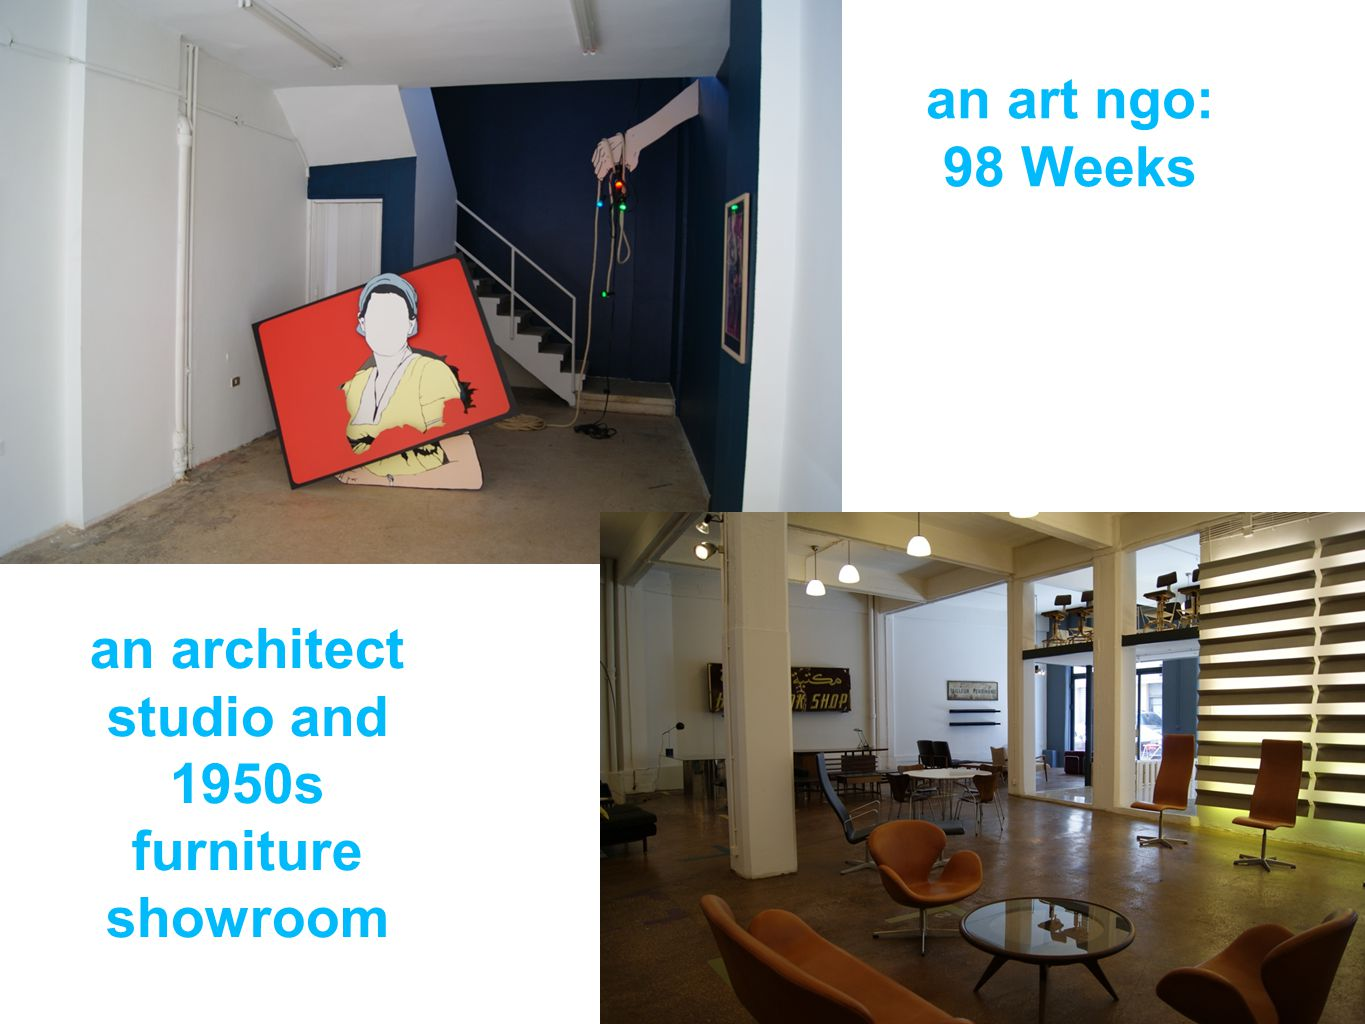 an art ngo: 98 Weeks an architect studio and 1950s furniture showroom